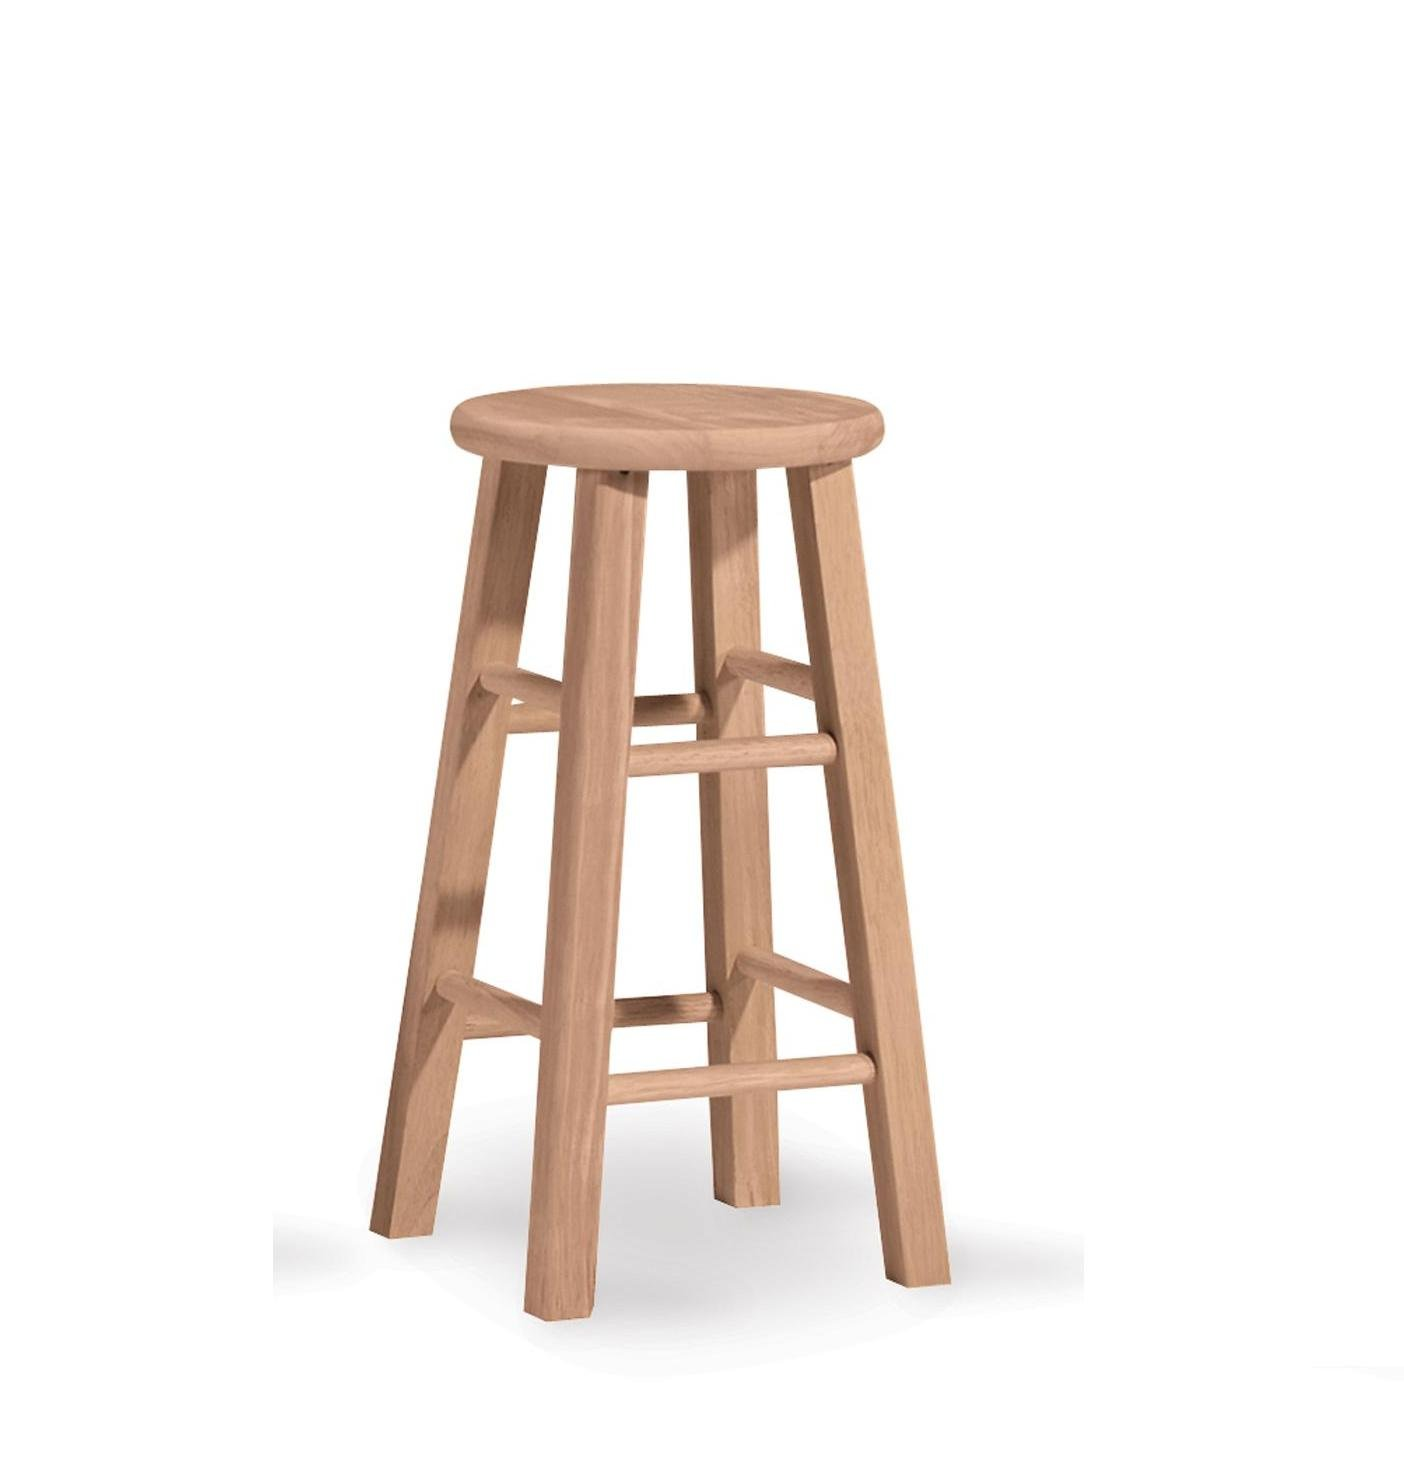 International Concepts 1S-524 24-Inch Round Top Stool, Unfinished